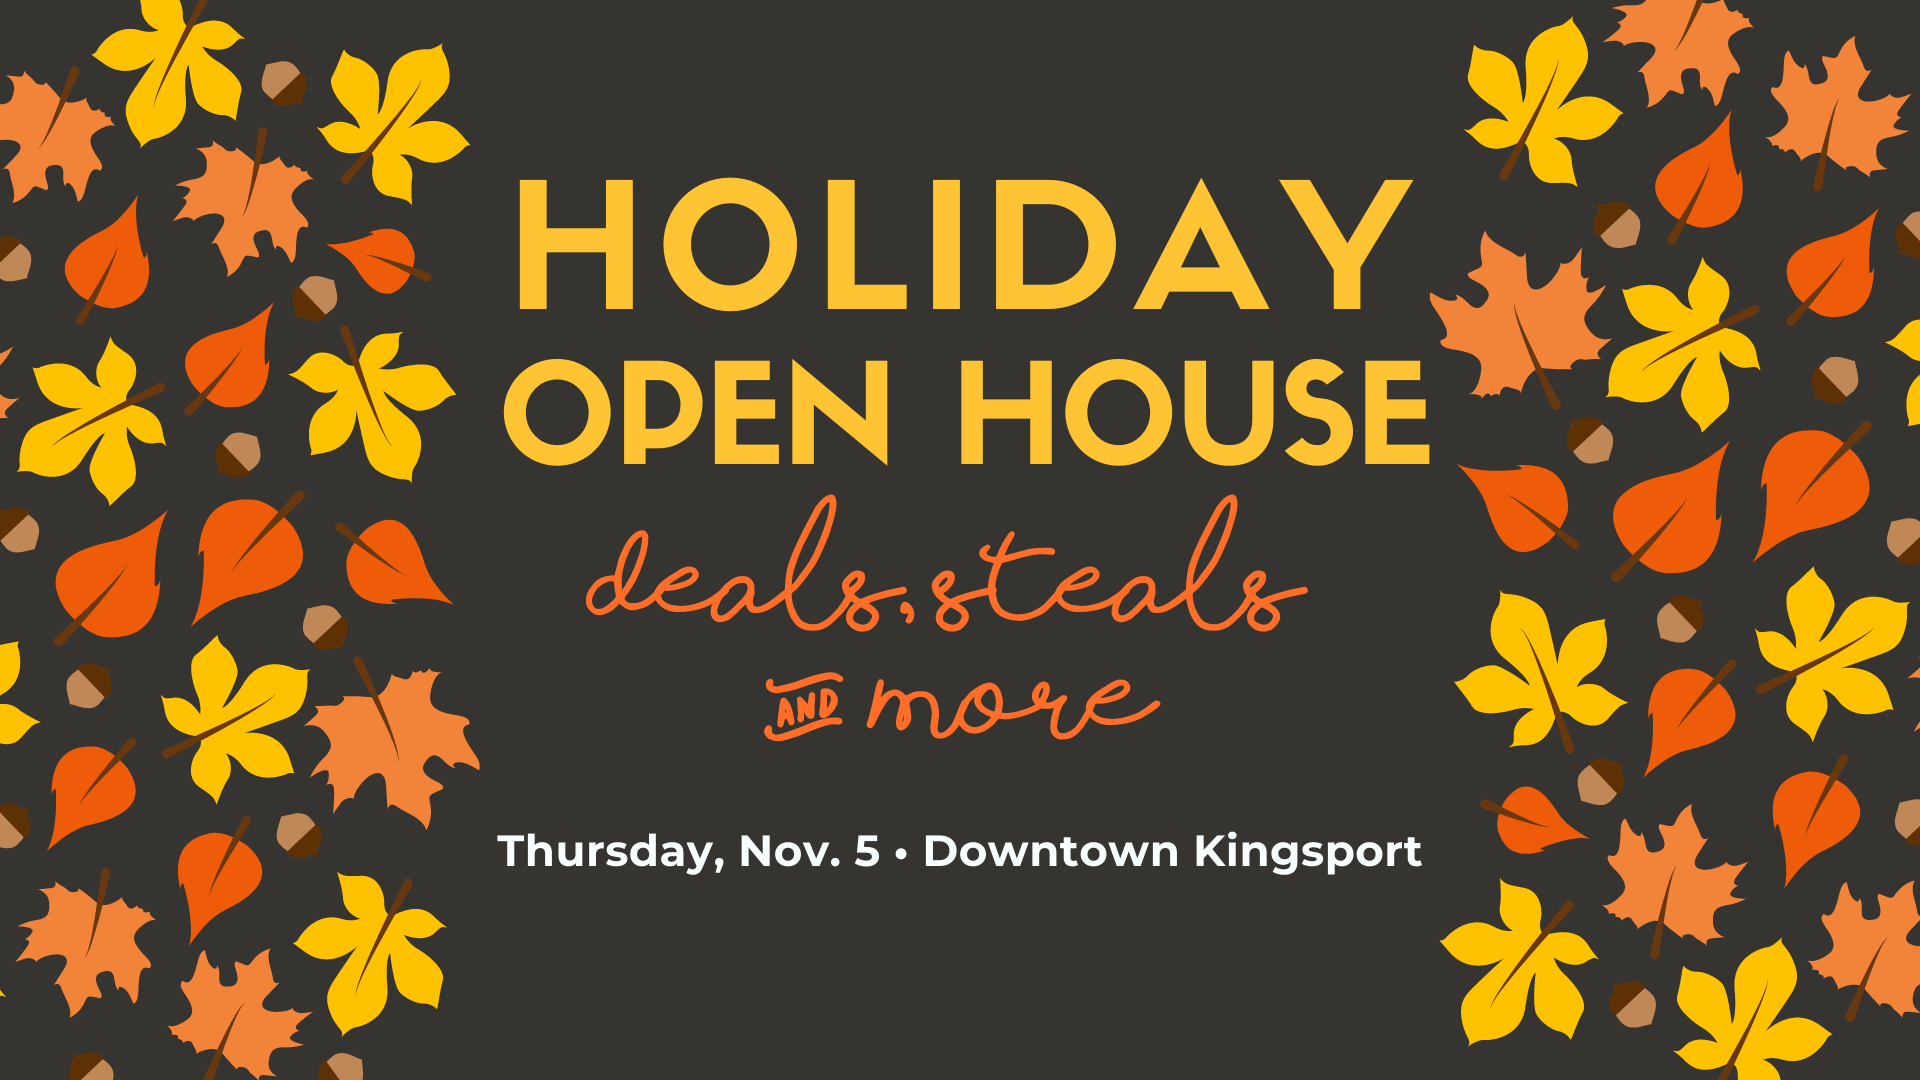 Abingdon Christmas Open House 2020 Downtown Kingsport businesses to participate in 'Holiday Open